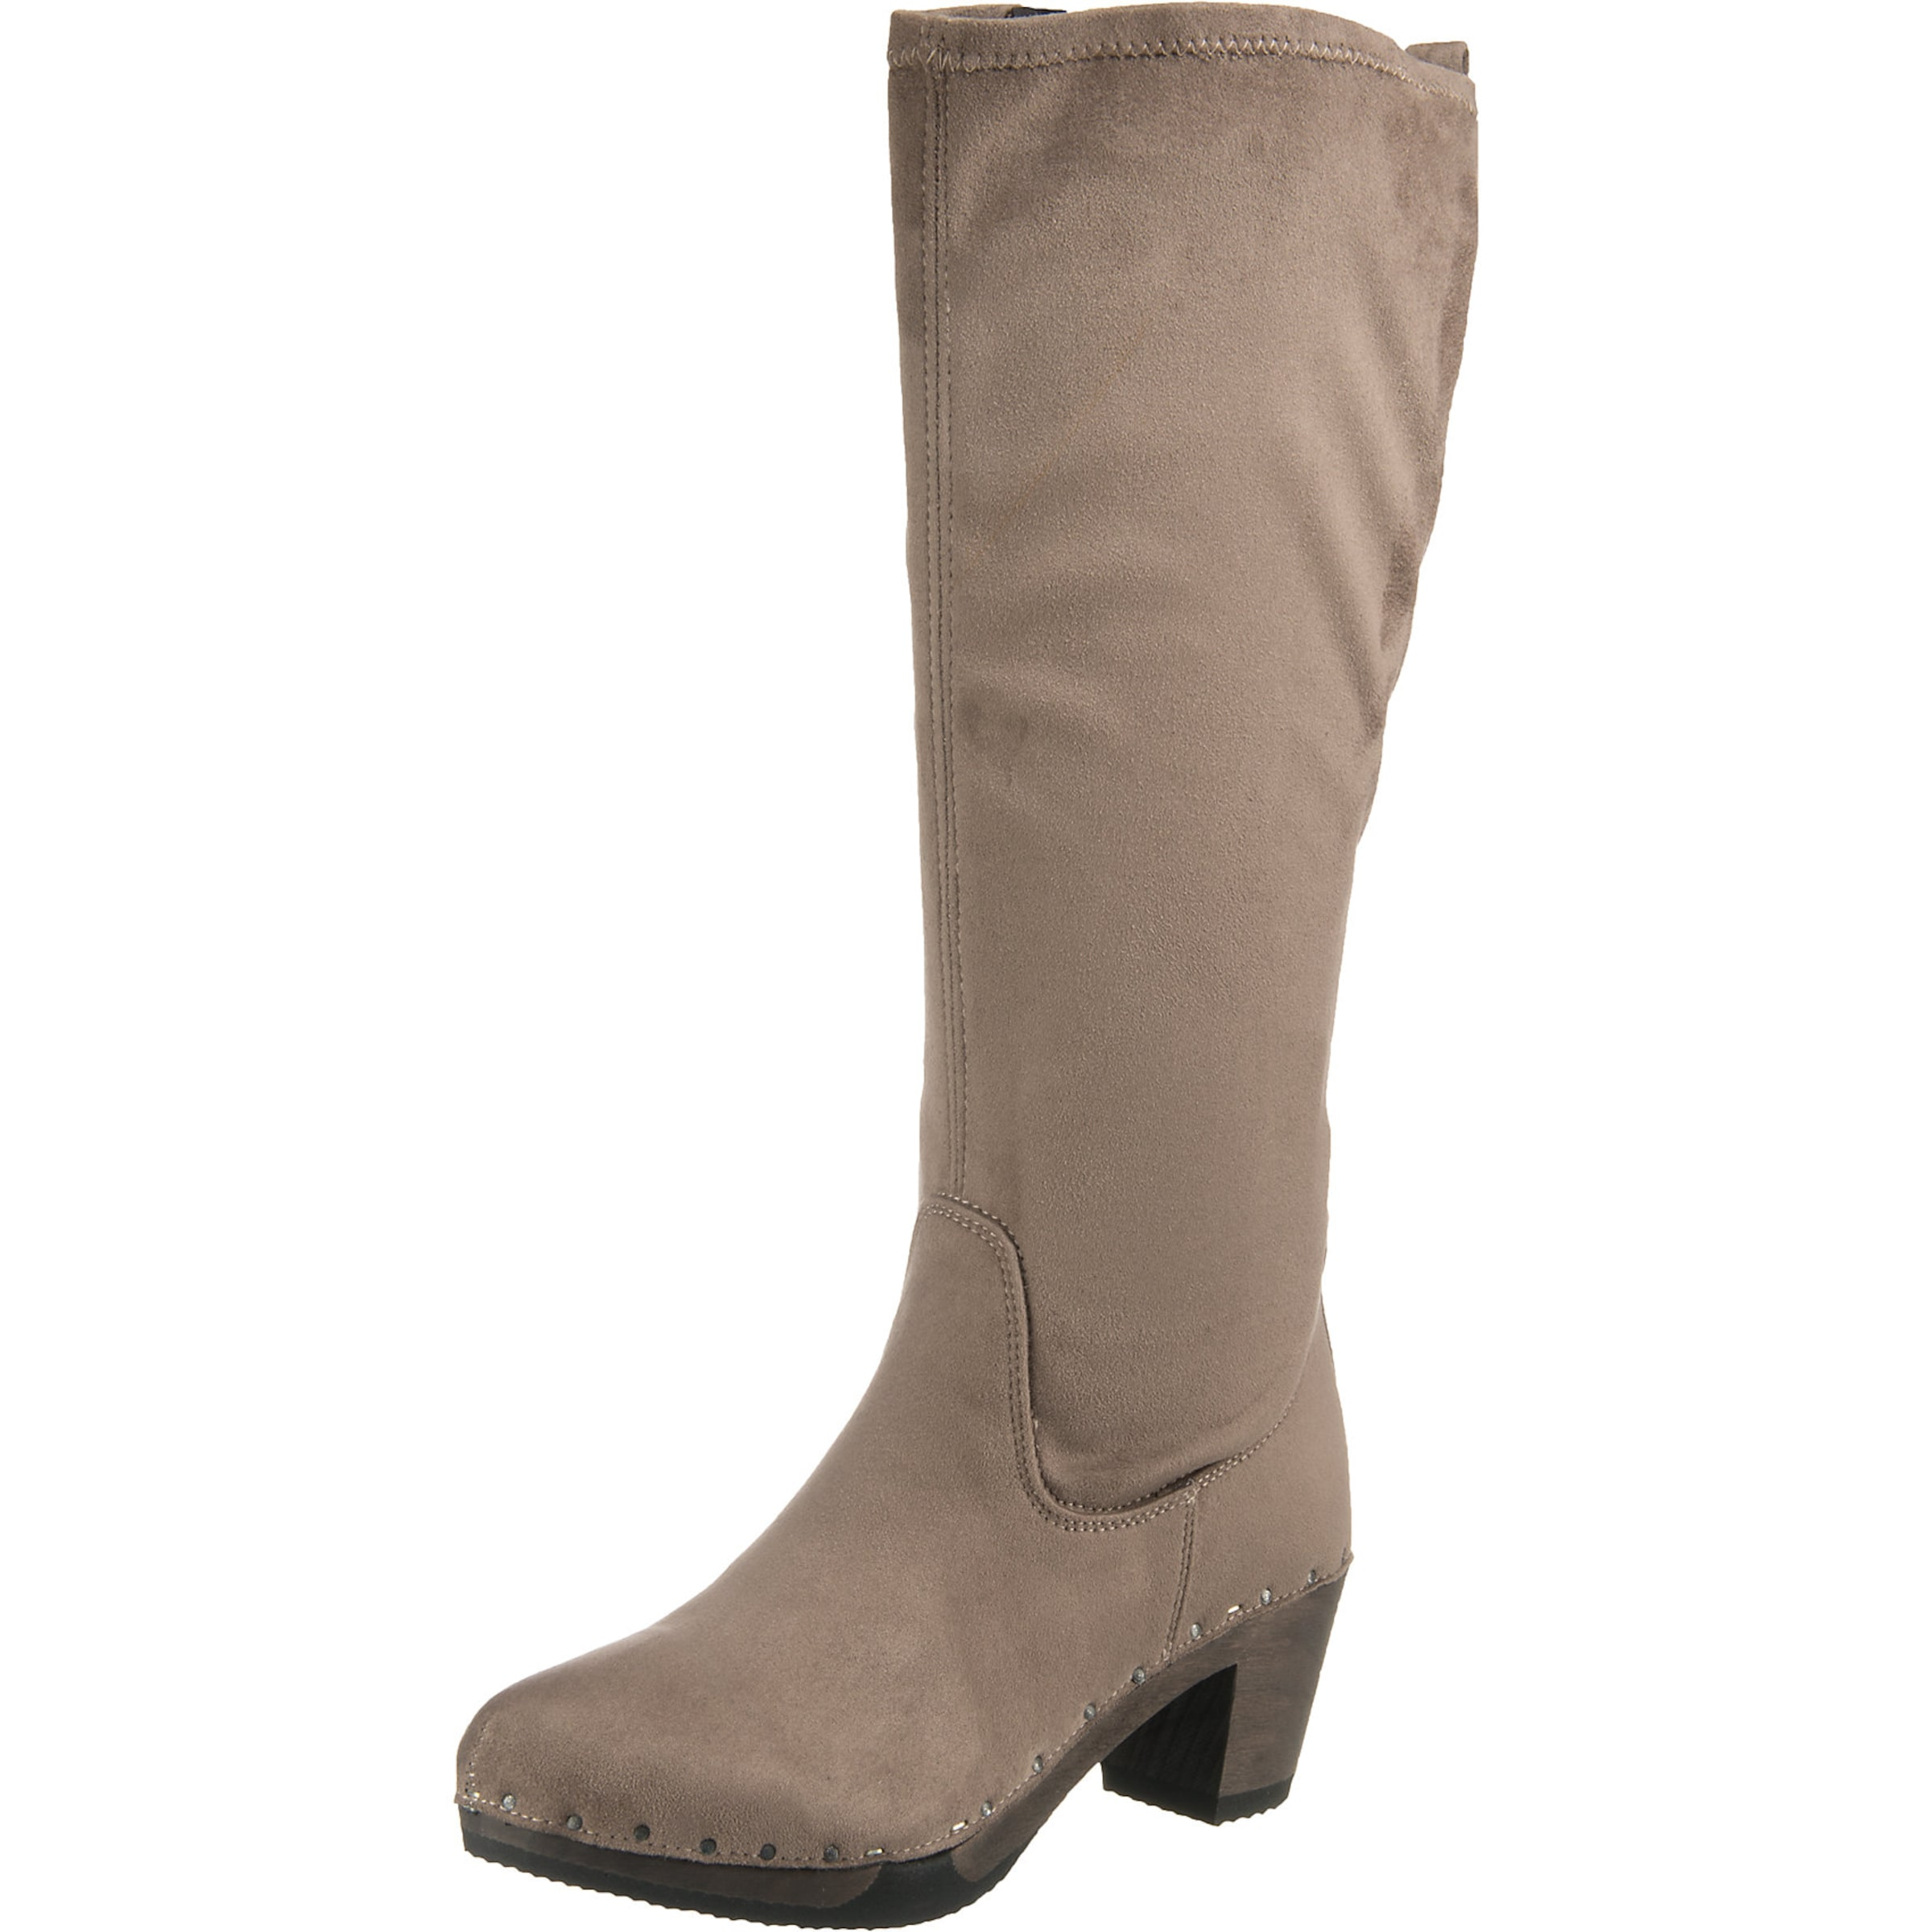 SOFTCLOX Stiefel beige in 'GINGER' 42d74lvxy81796 Schuhe